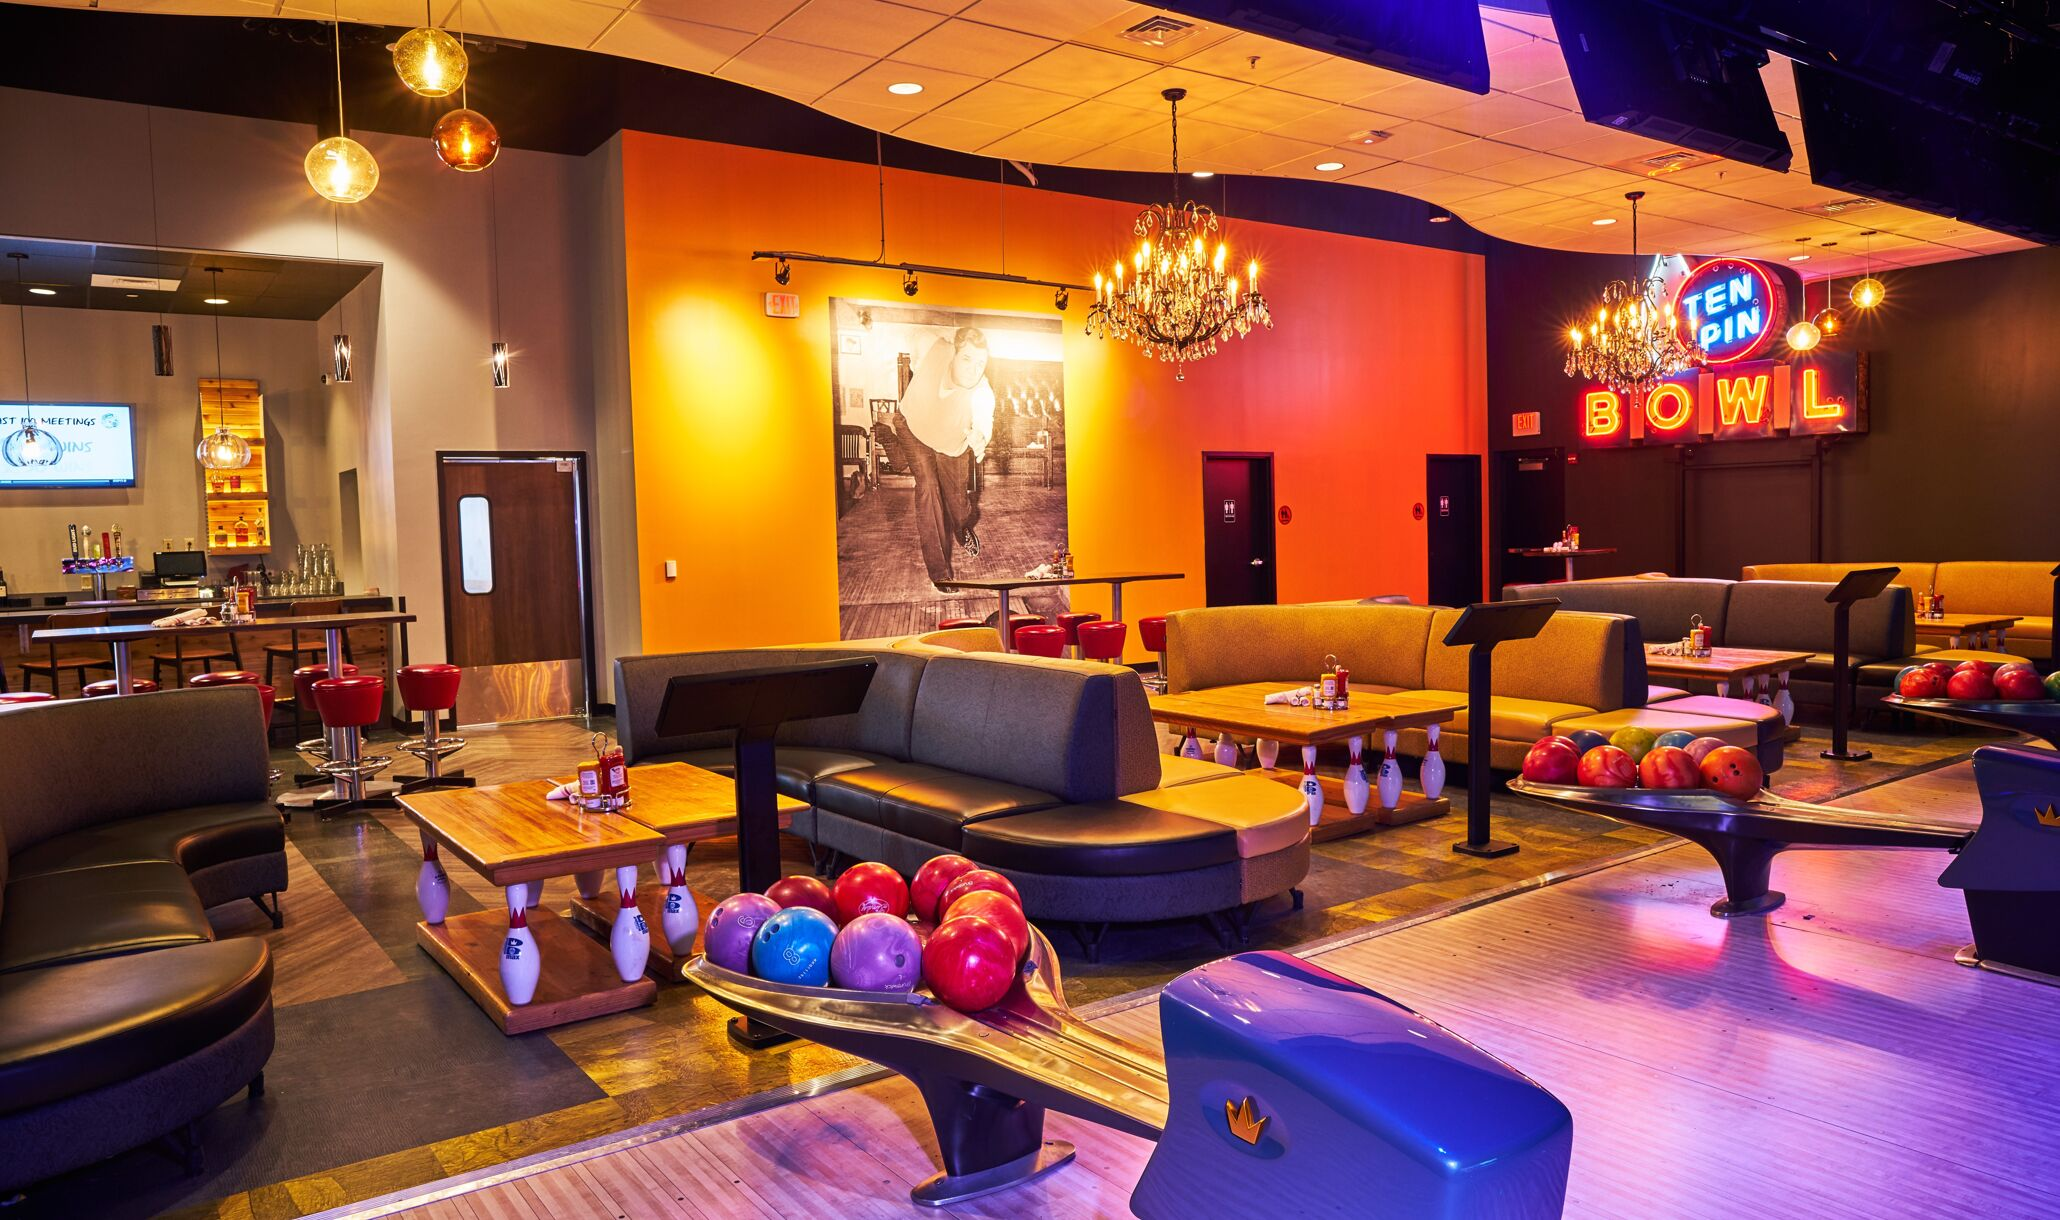 Ten Pin Alley Oh Vip 20180208 9333-1